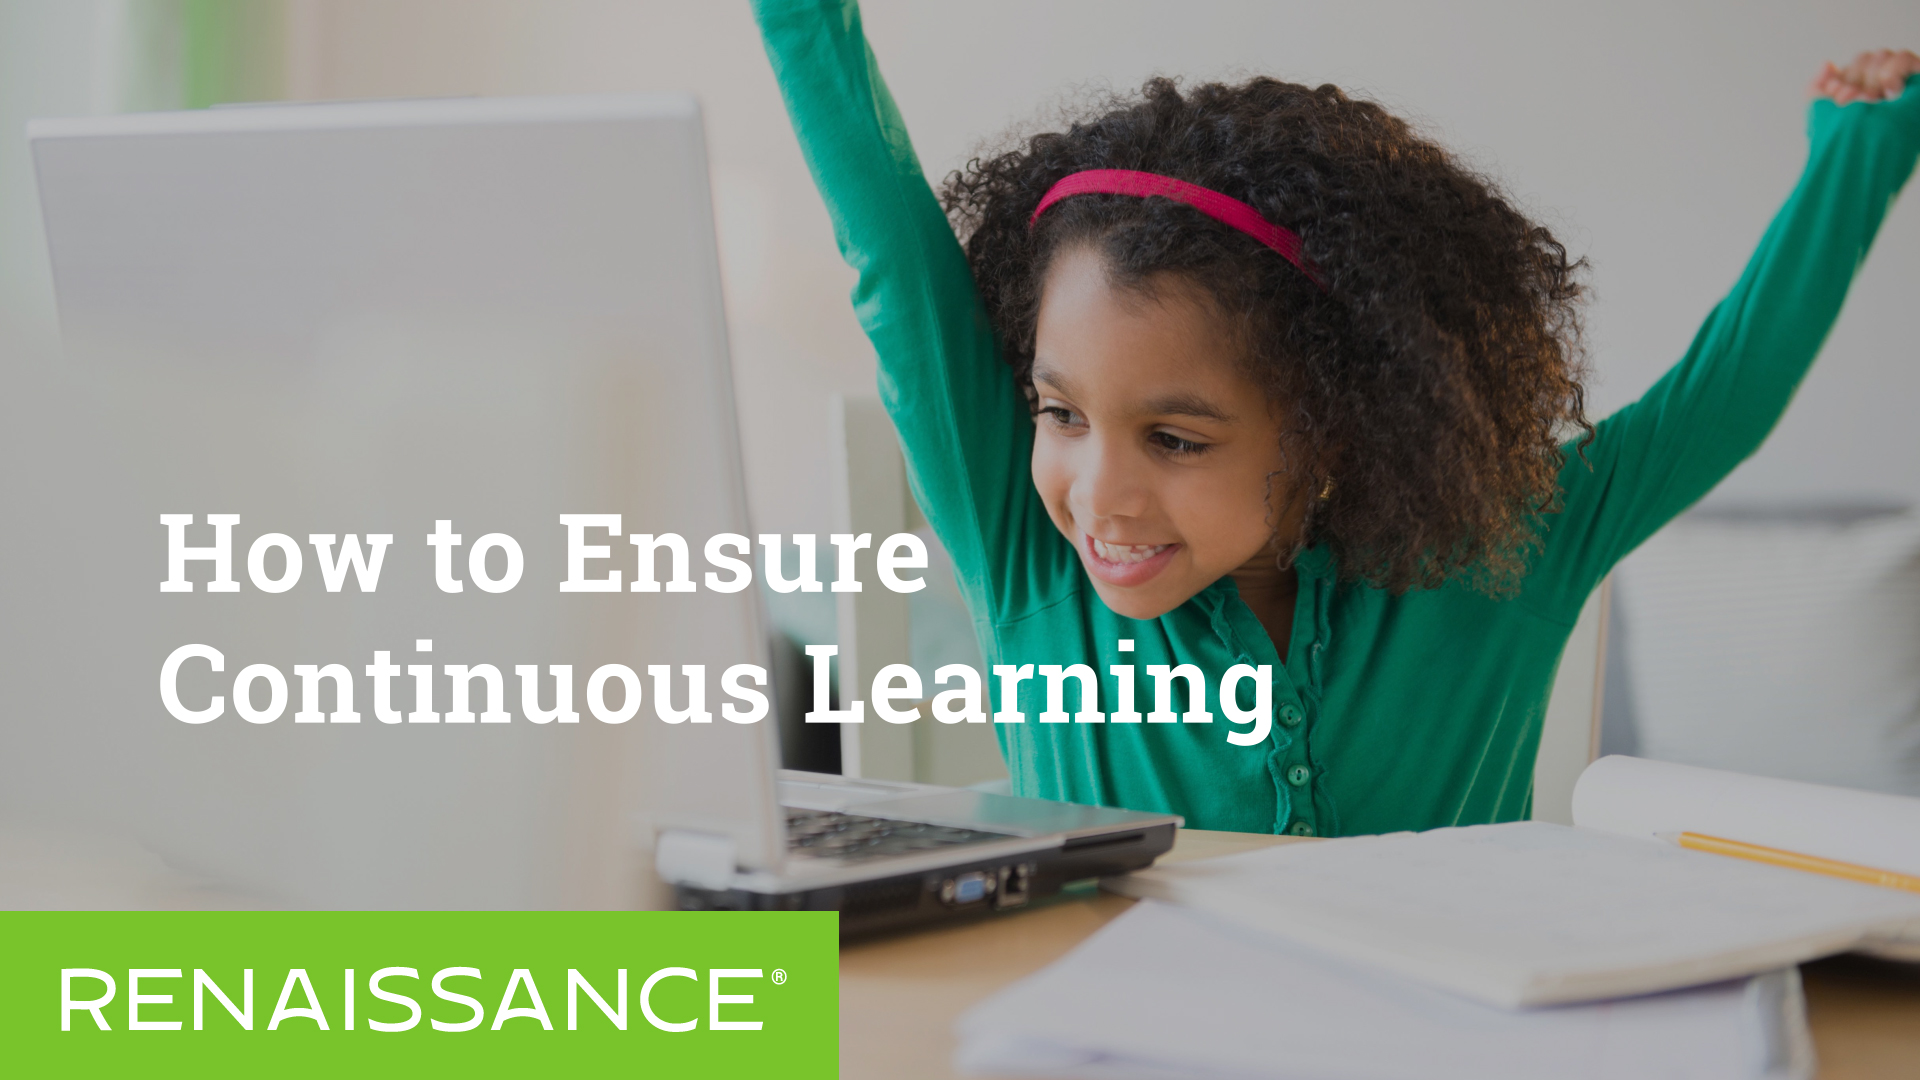 How to Ensure Continuous Learning